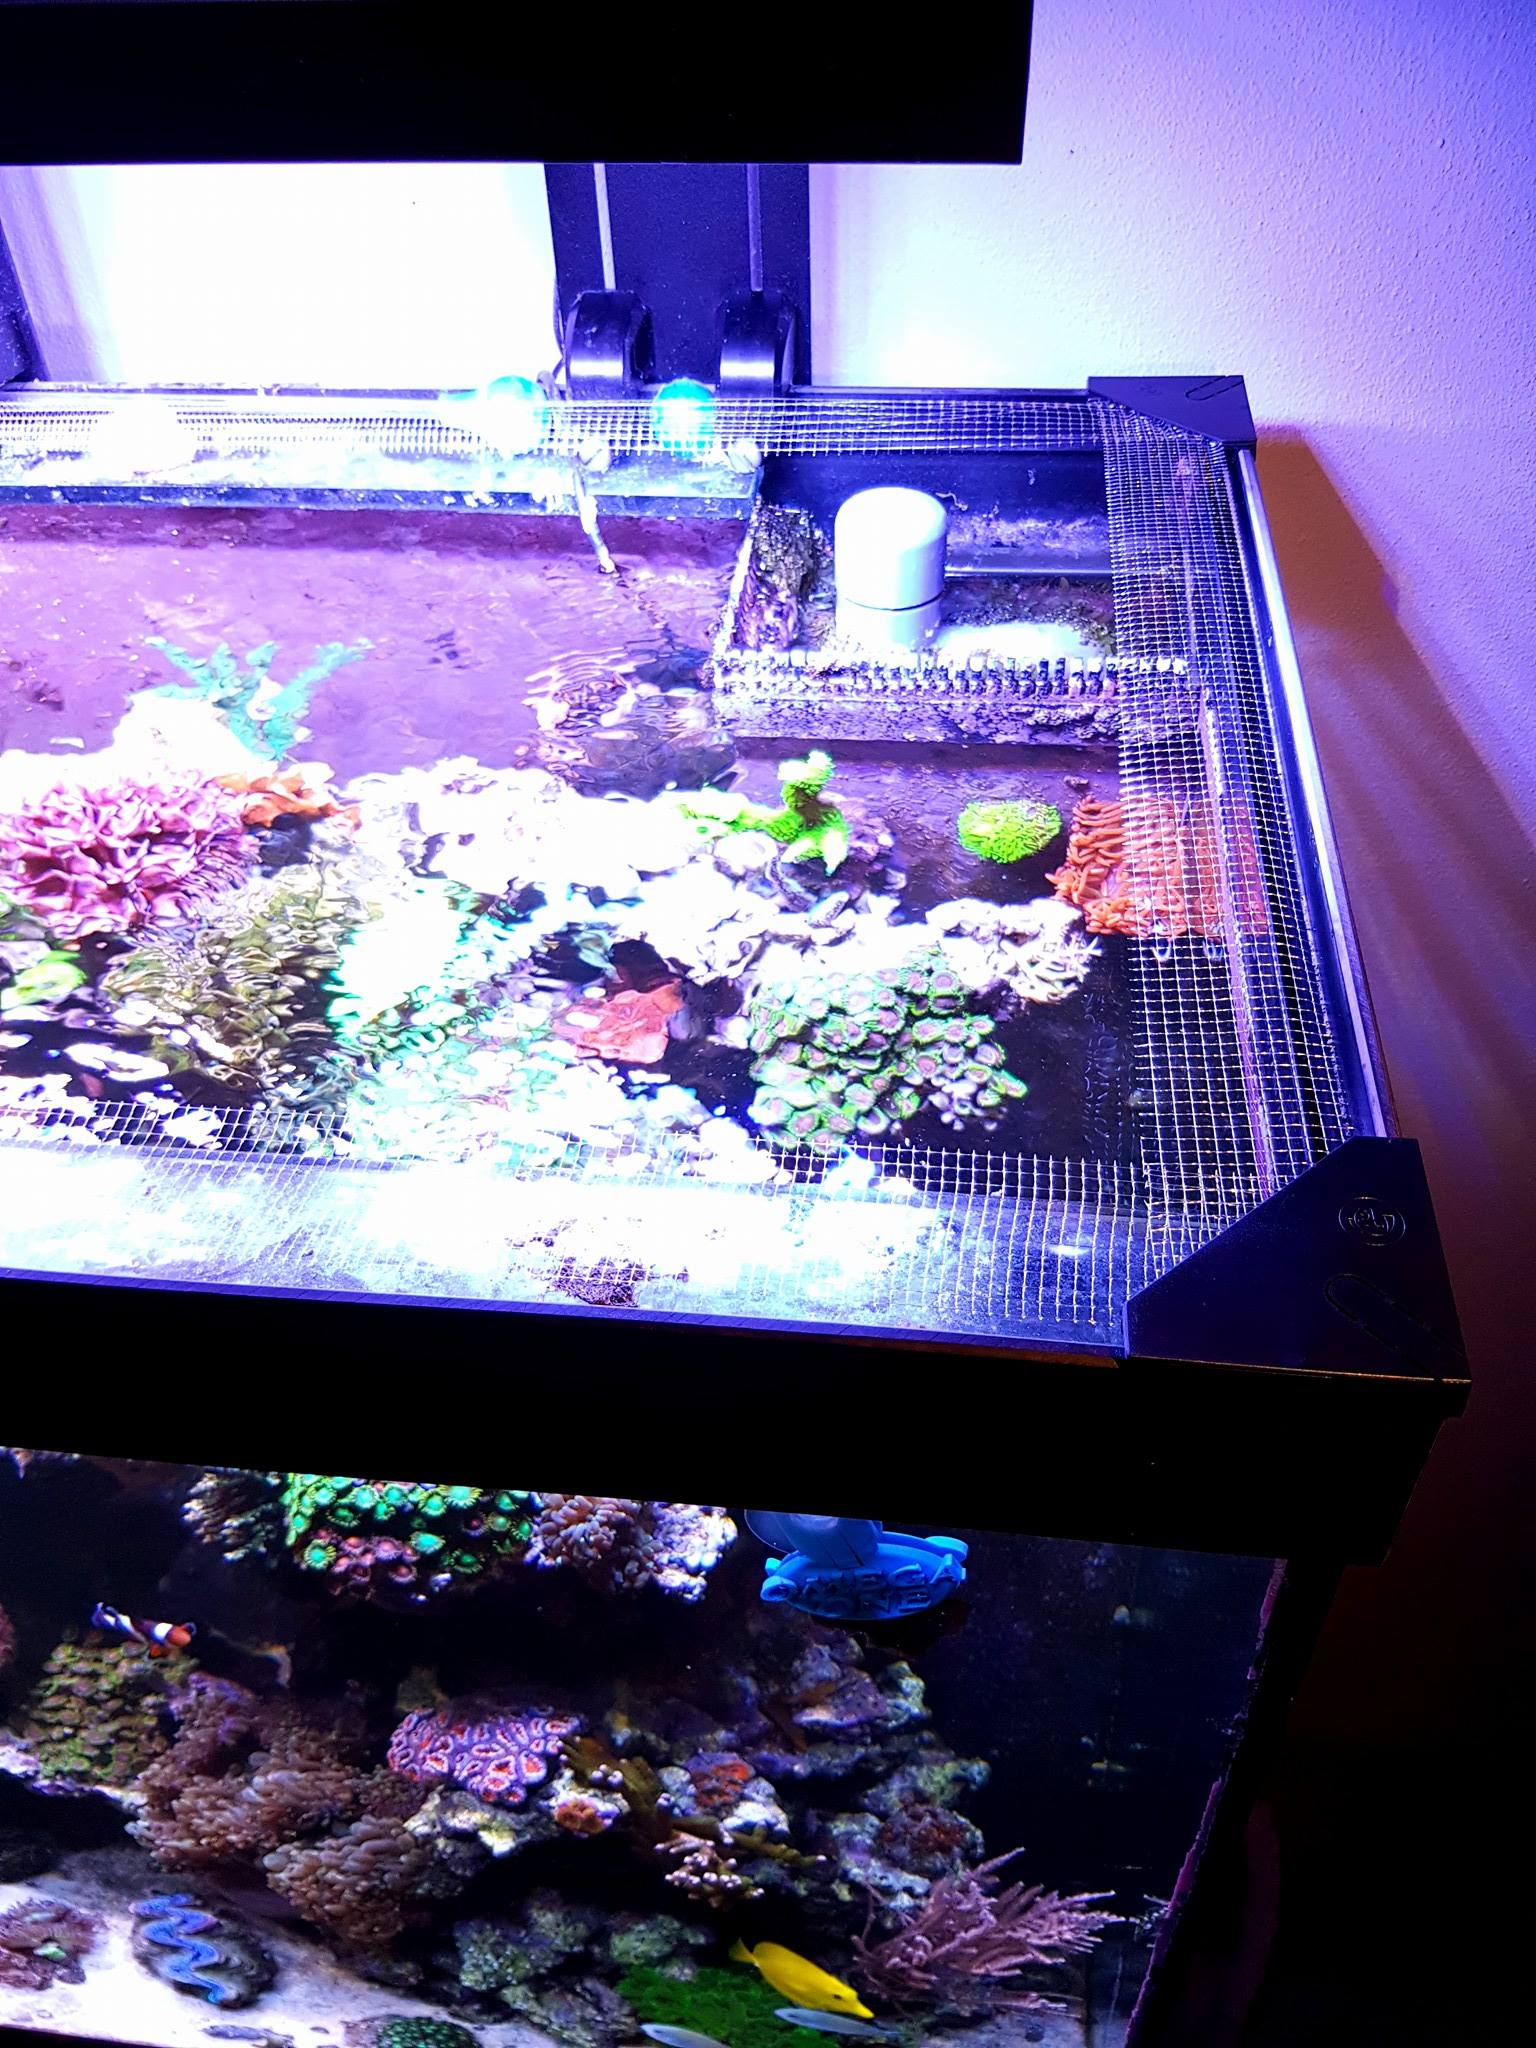 DIY Mesh screen for aquarium